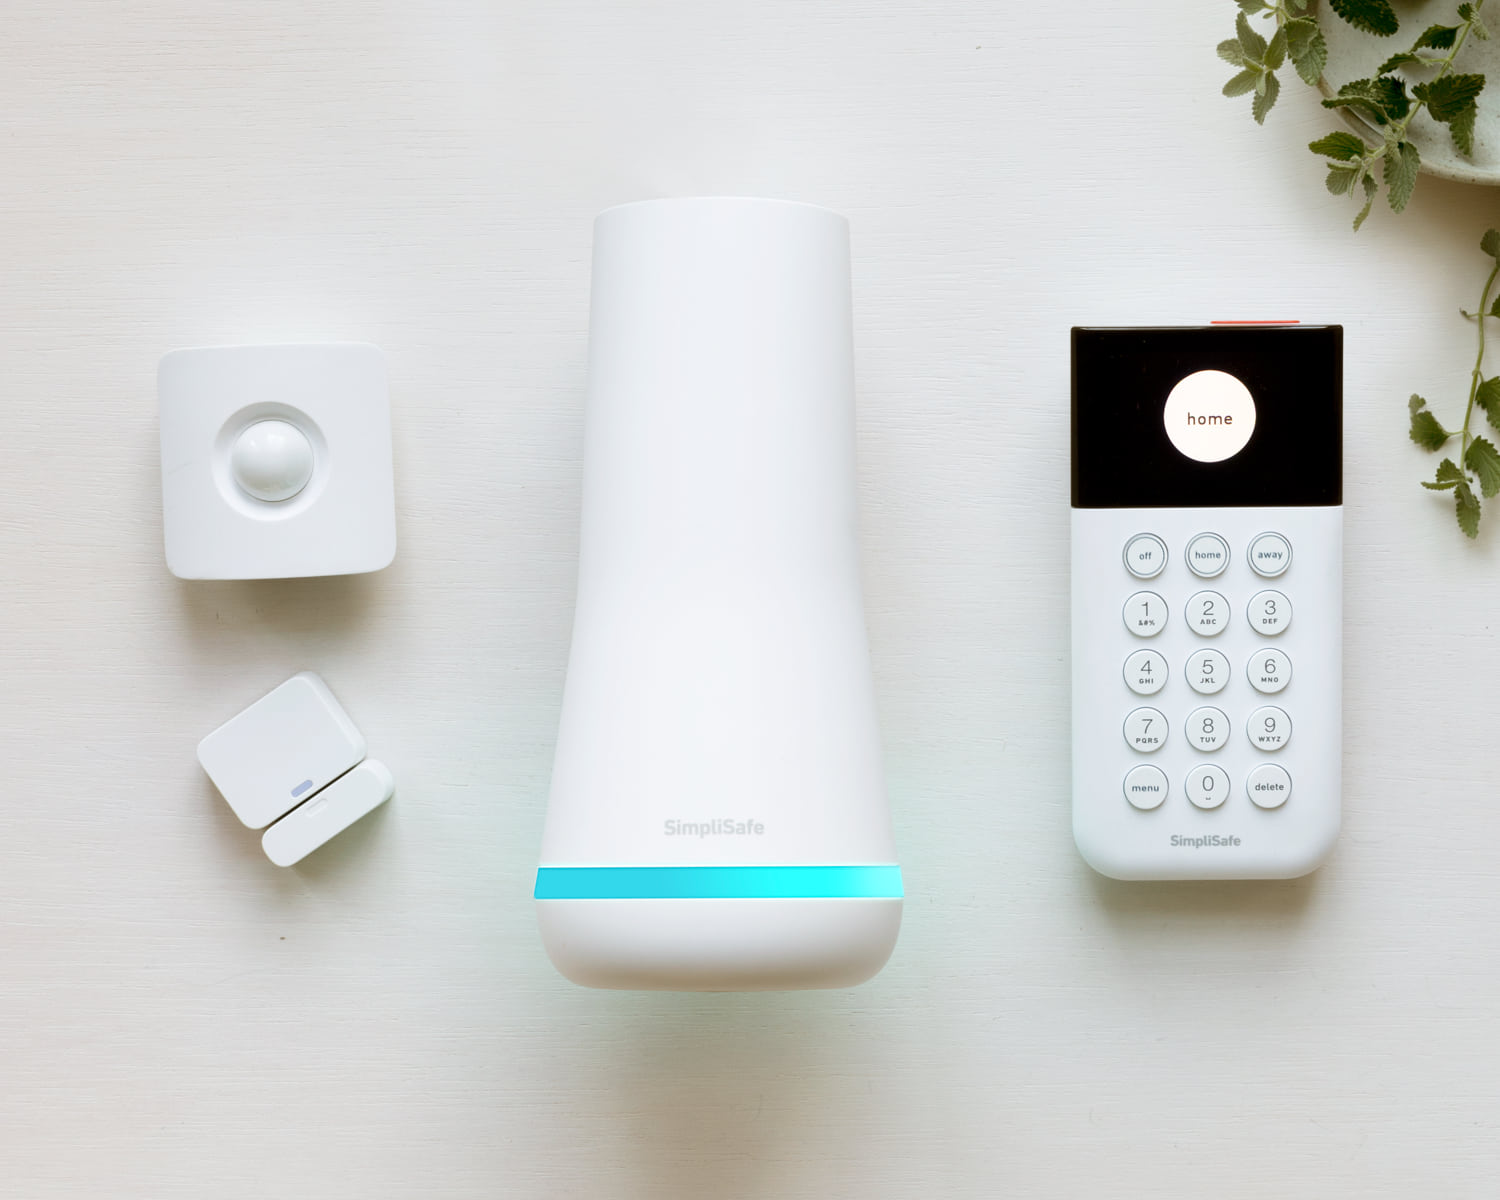 simplisafe-home-security-that-detects-pets.jpg